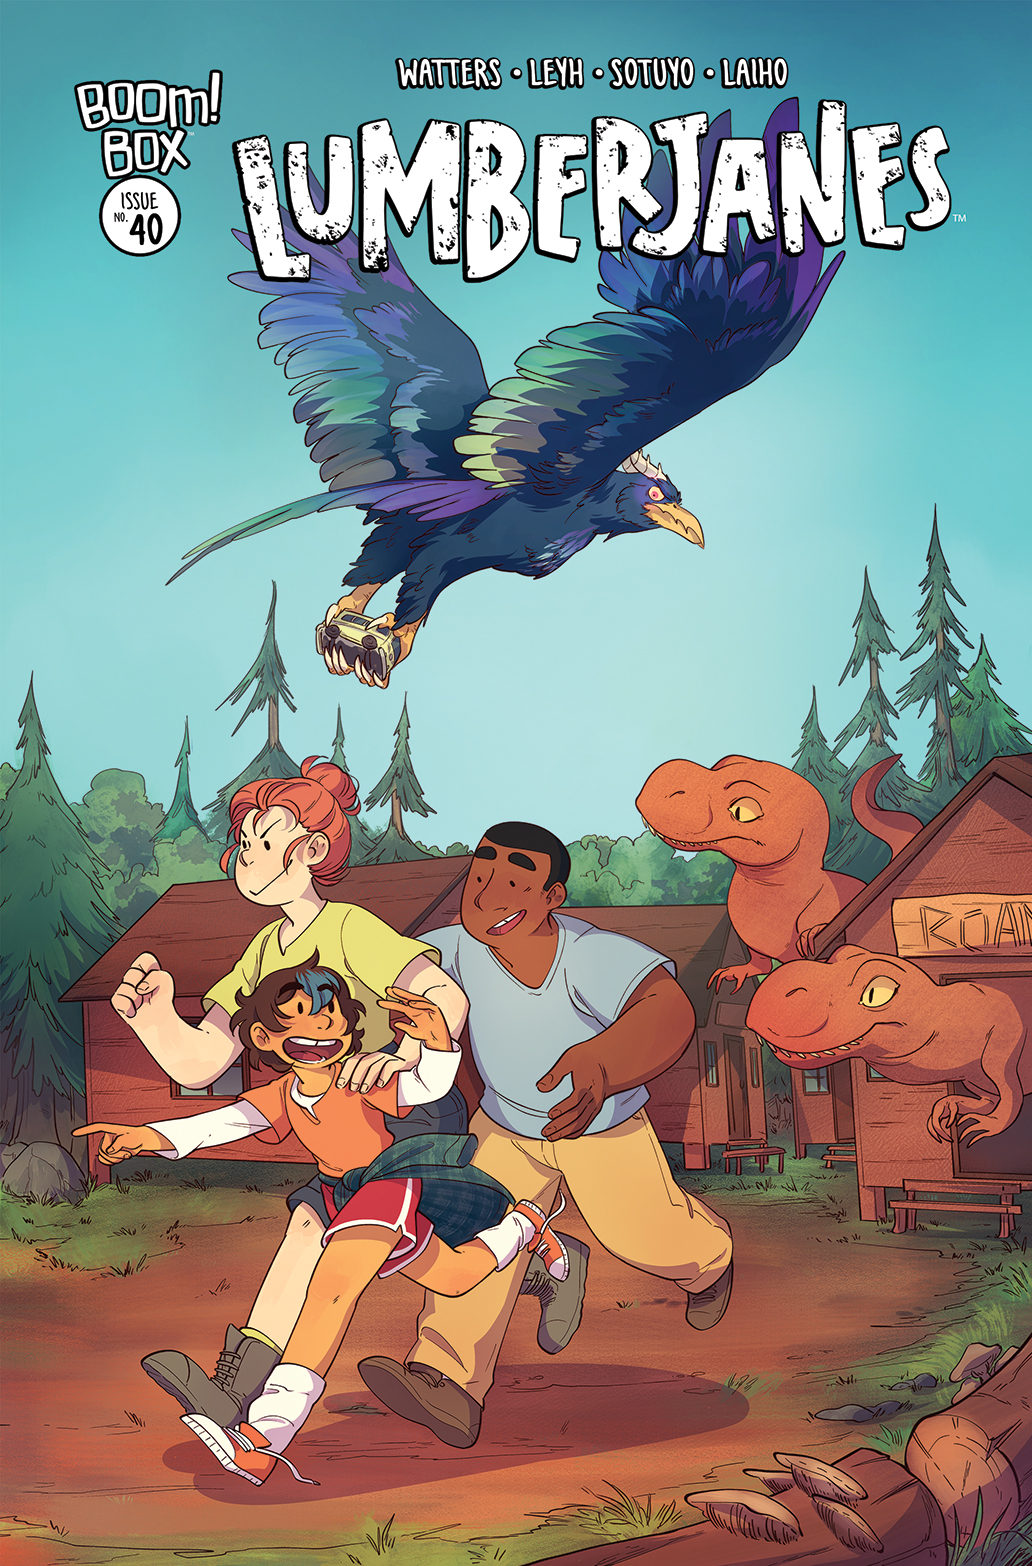 LUMBERJANES #40 SUBSCRIPTION SOTUYO VAR